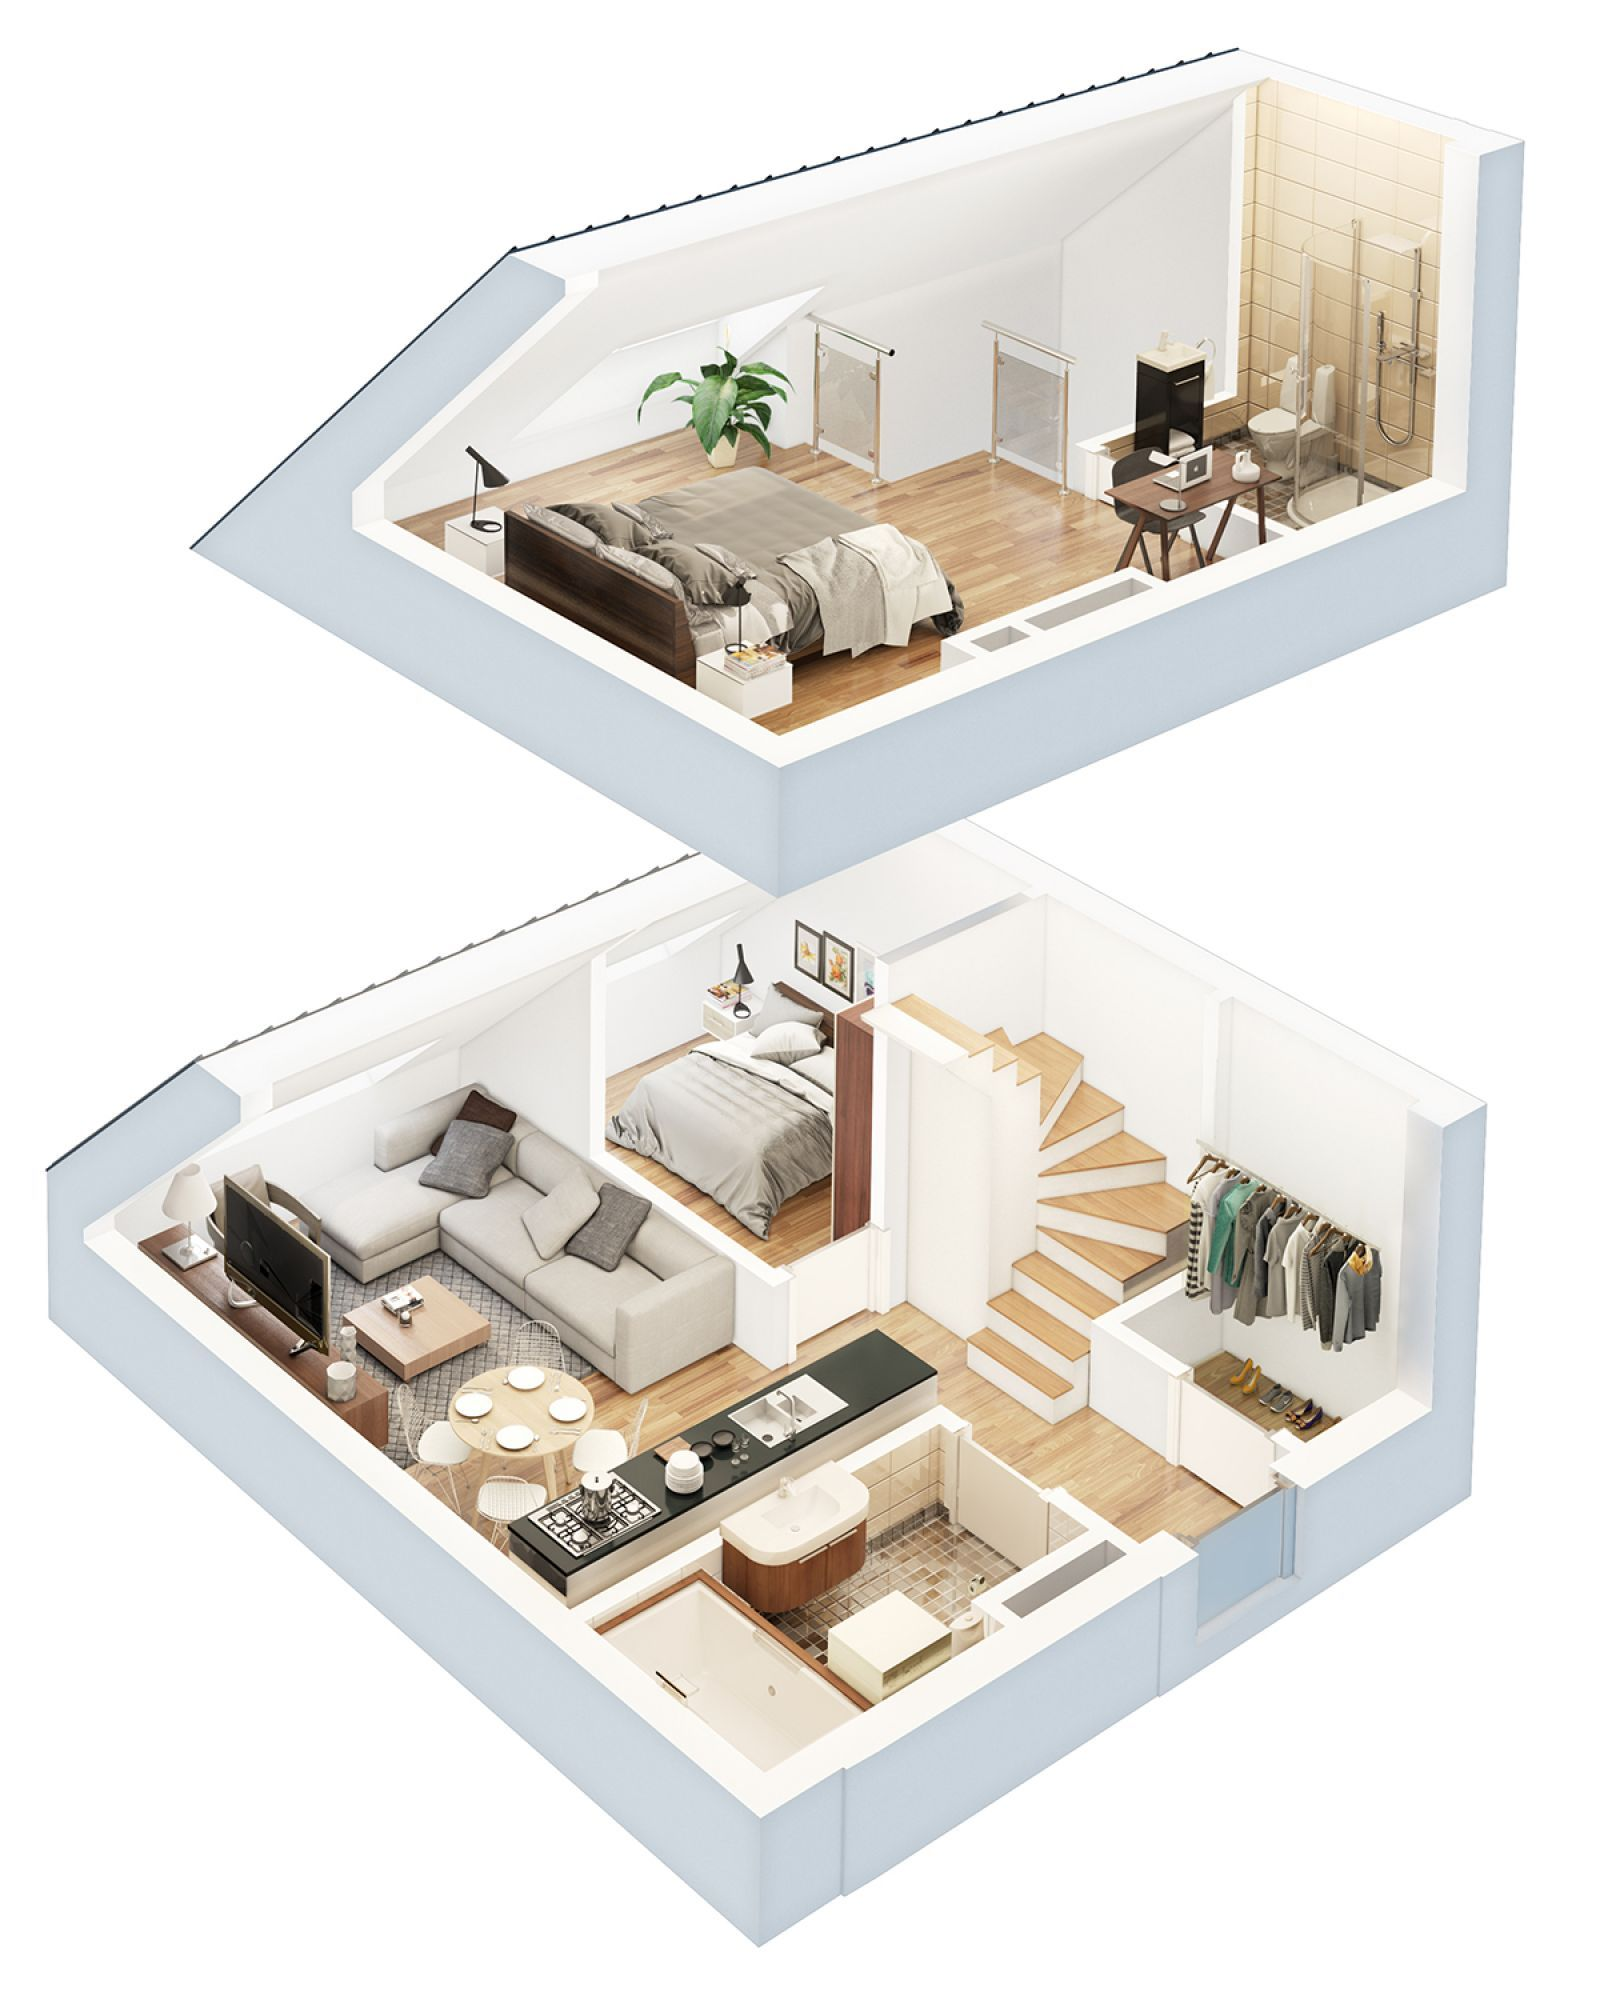 Pin on dream home cool interior designs rooms furniture